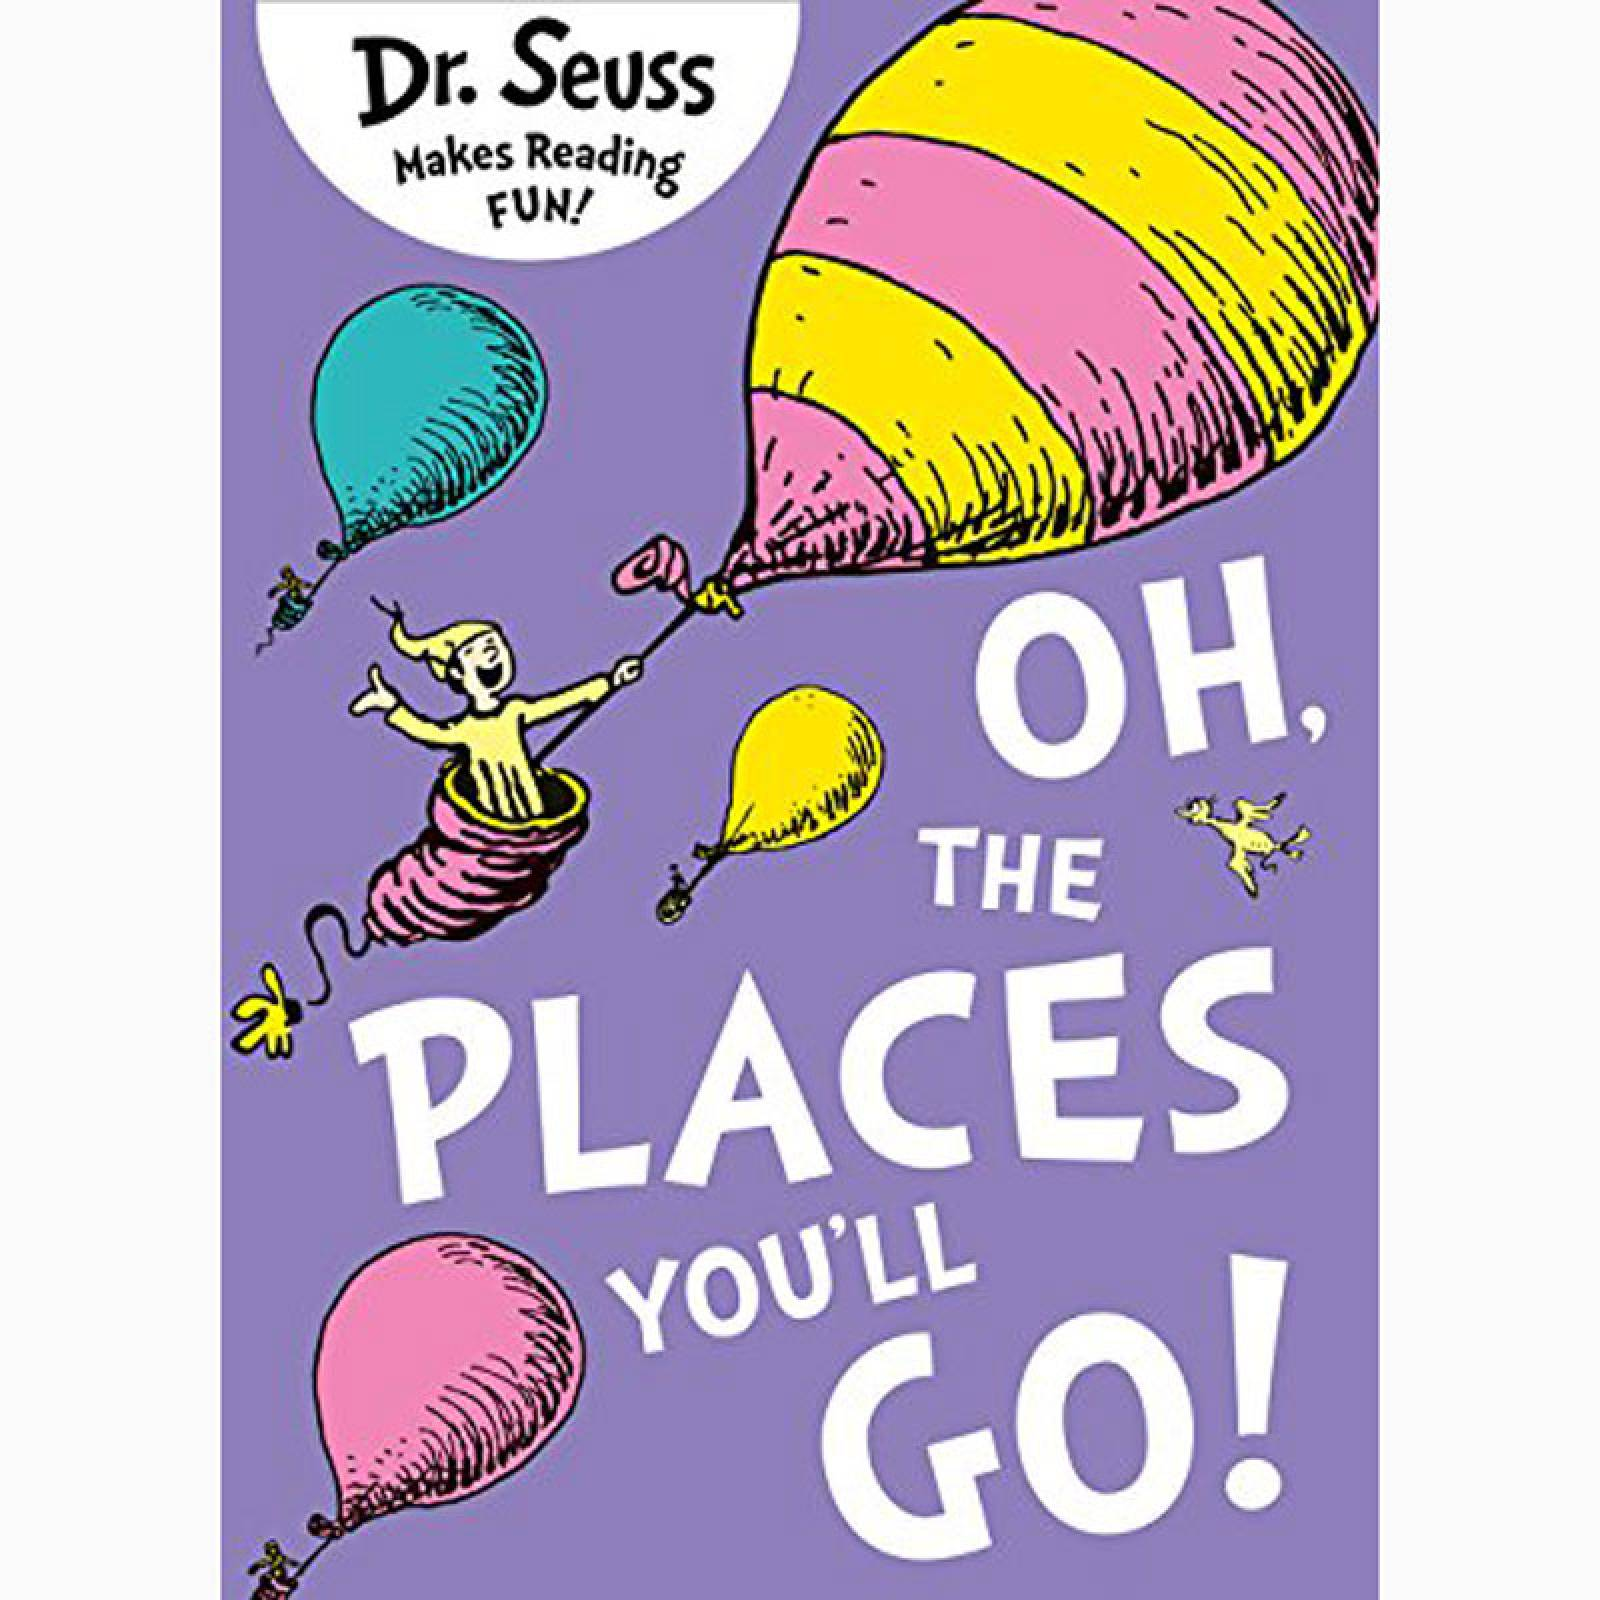 Oh The Places You'll Go By Dr. Seuss - Paperback Book